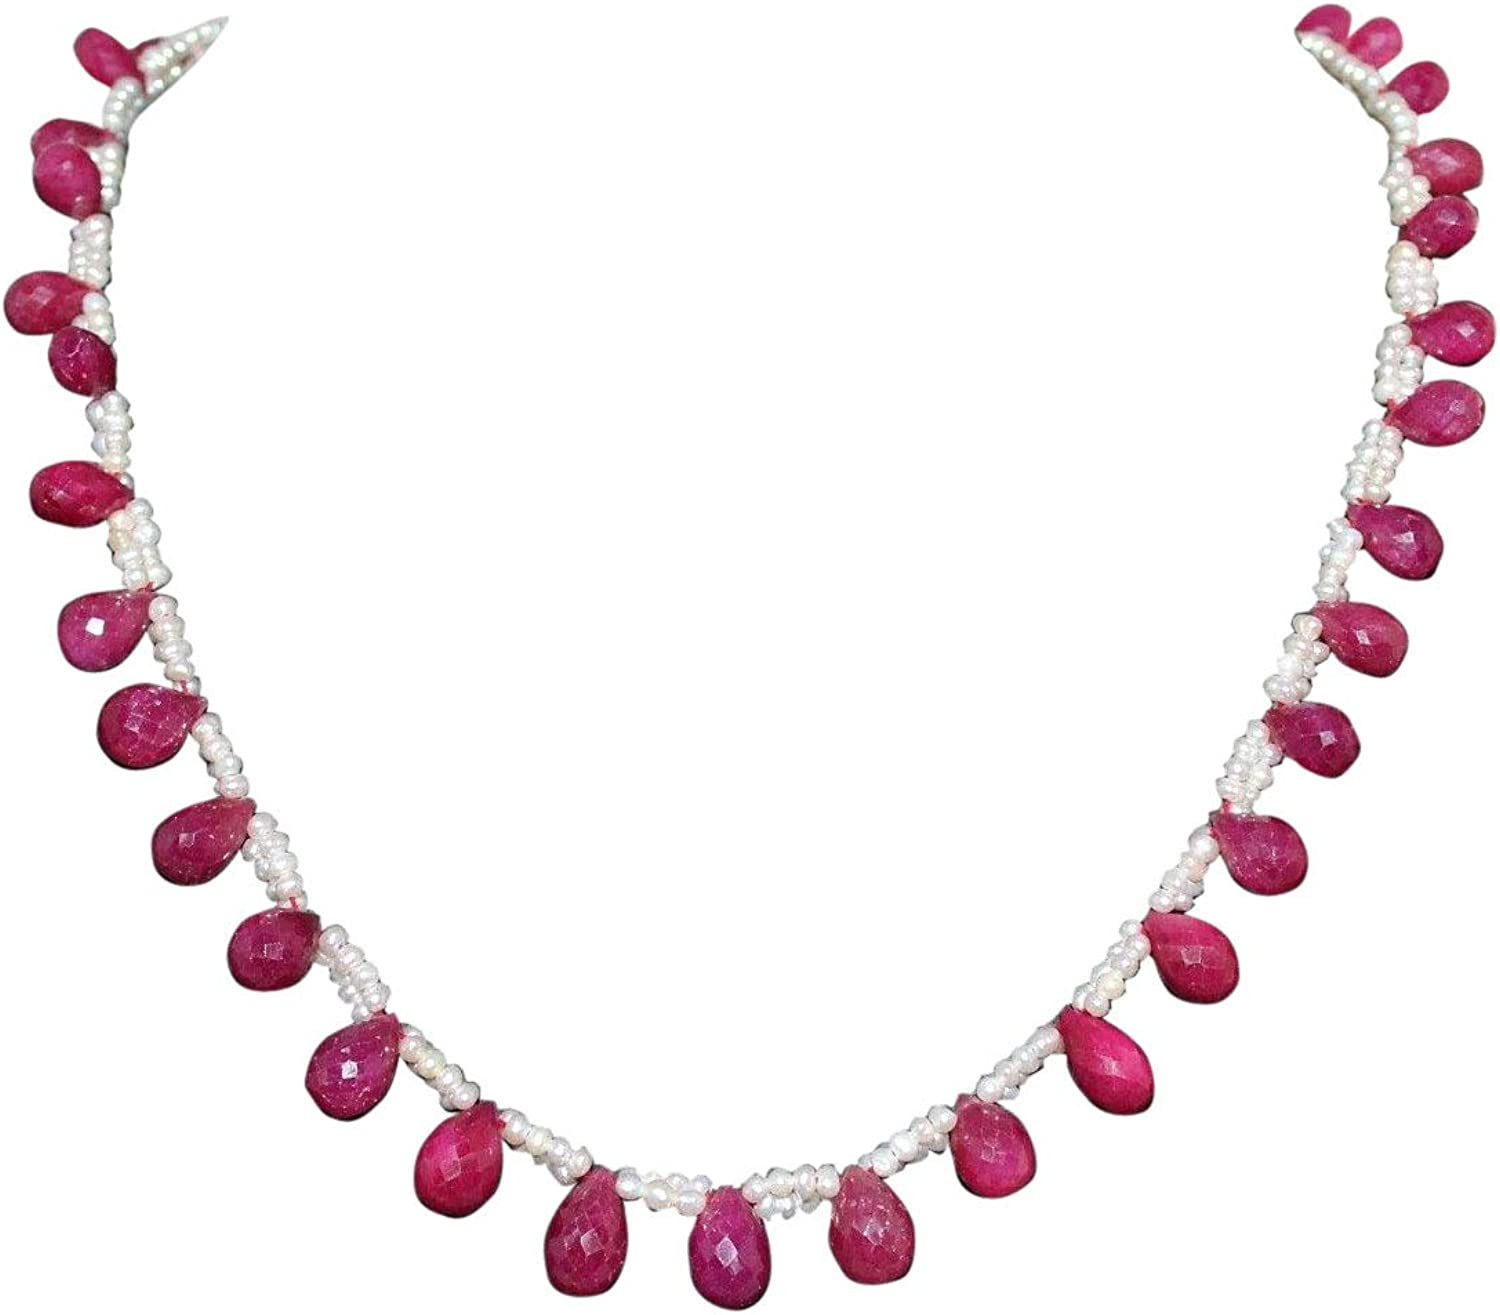 Rajasthan Gems Beautiful Real Ruby Drops and Pearls Beads Necklace Strand